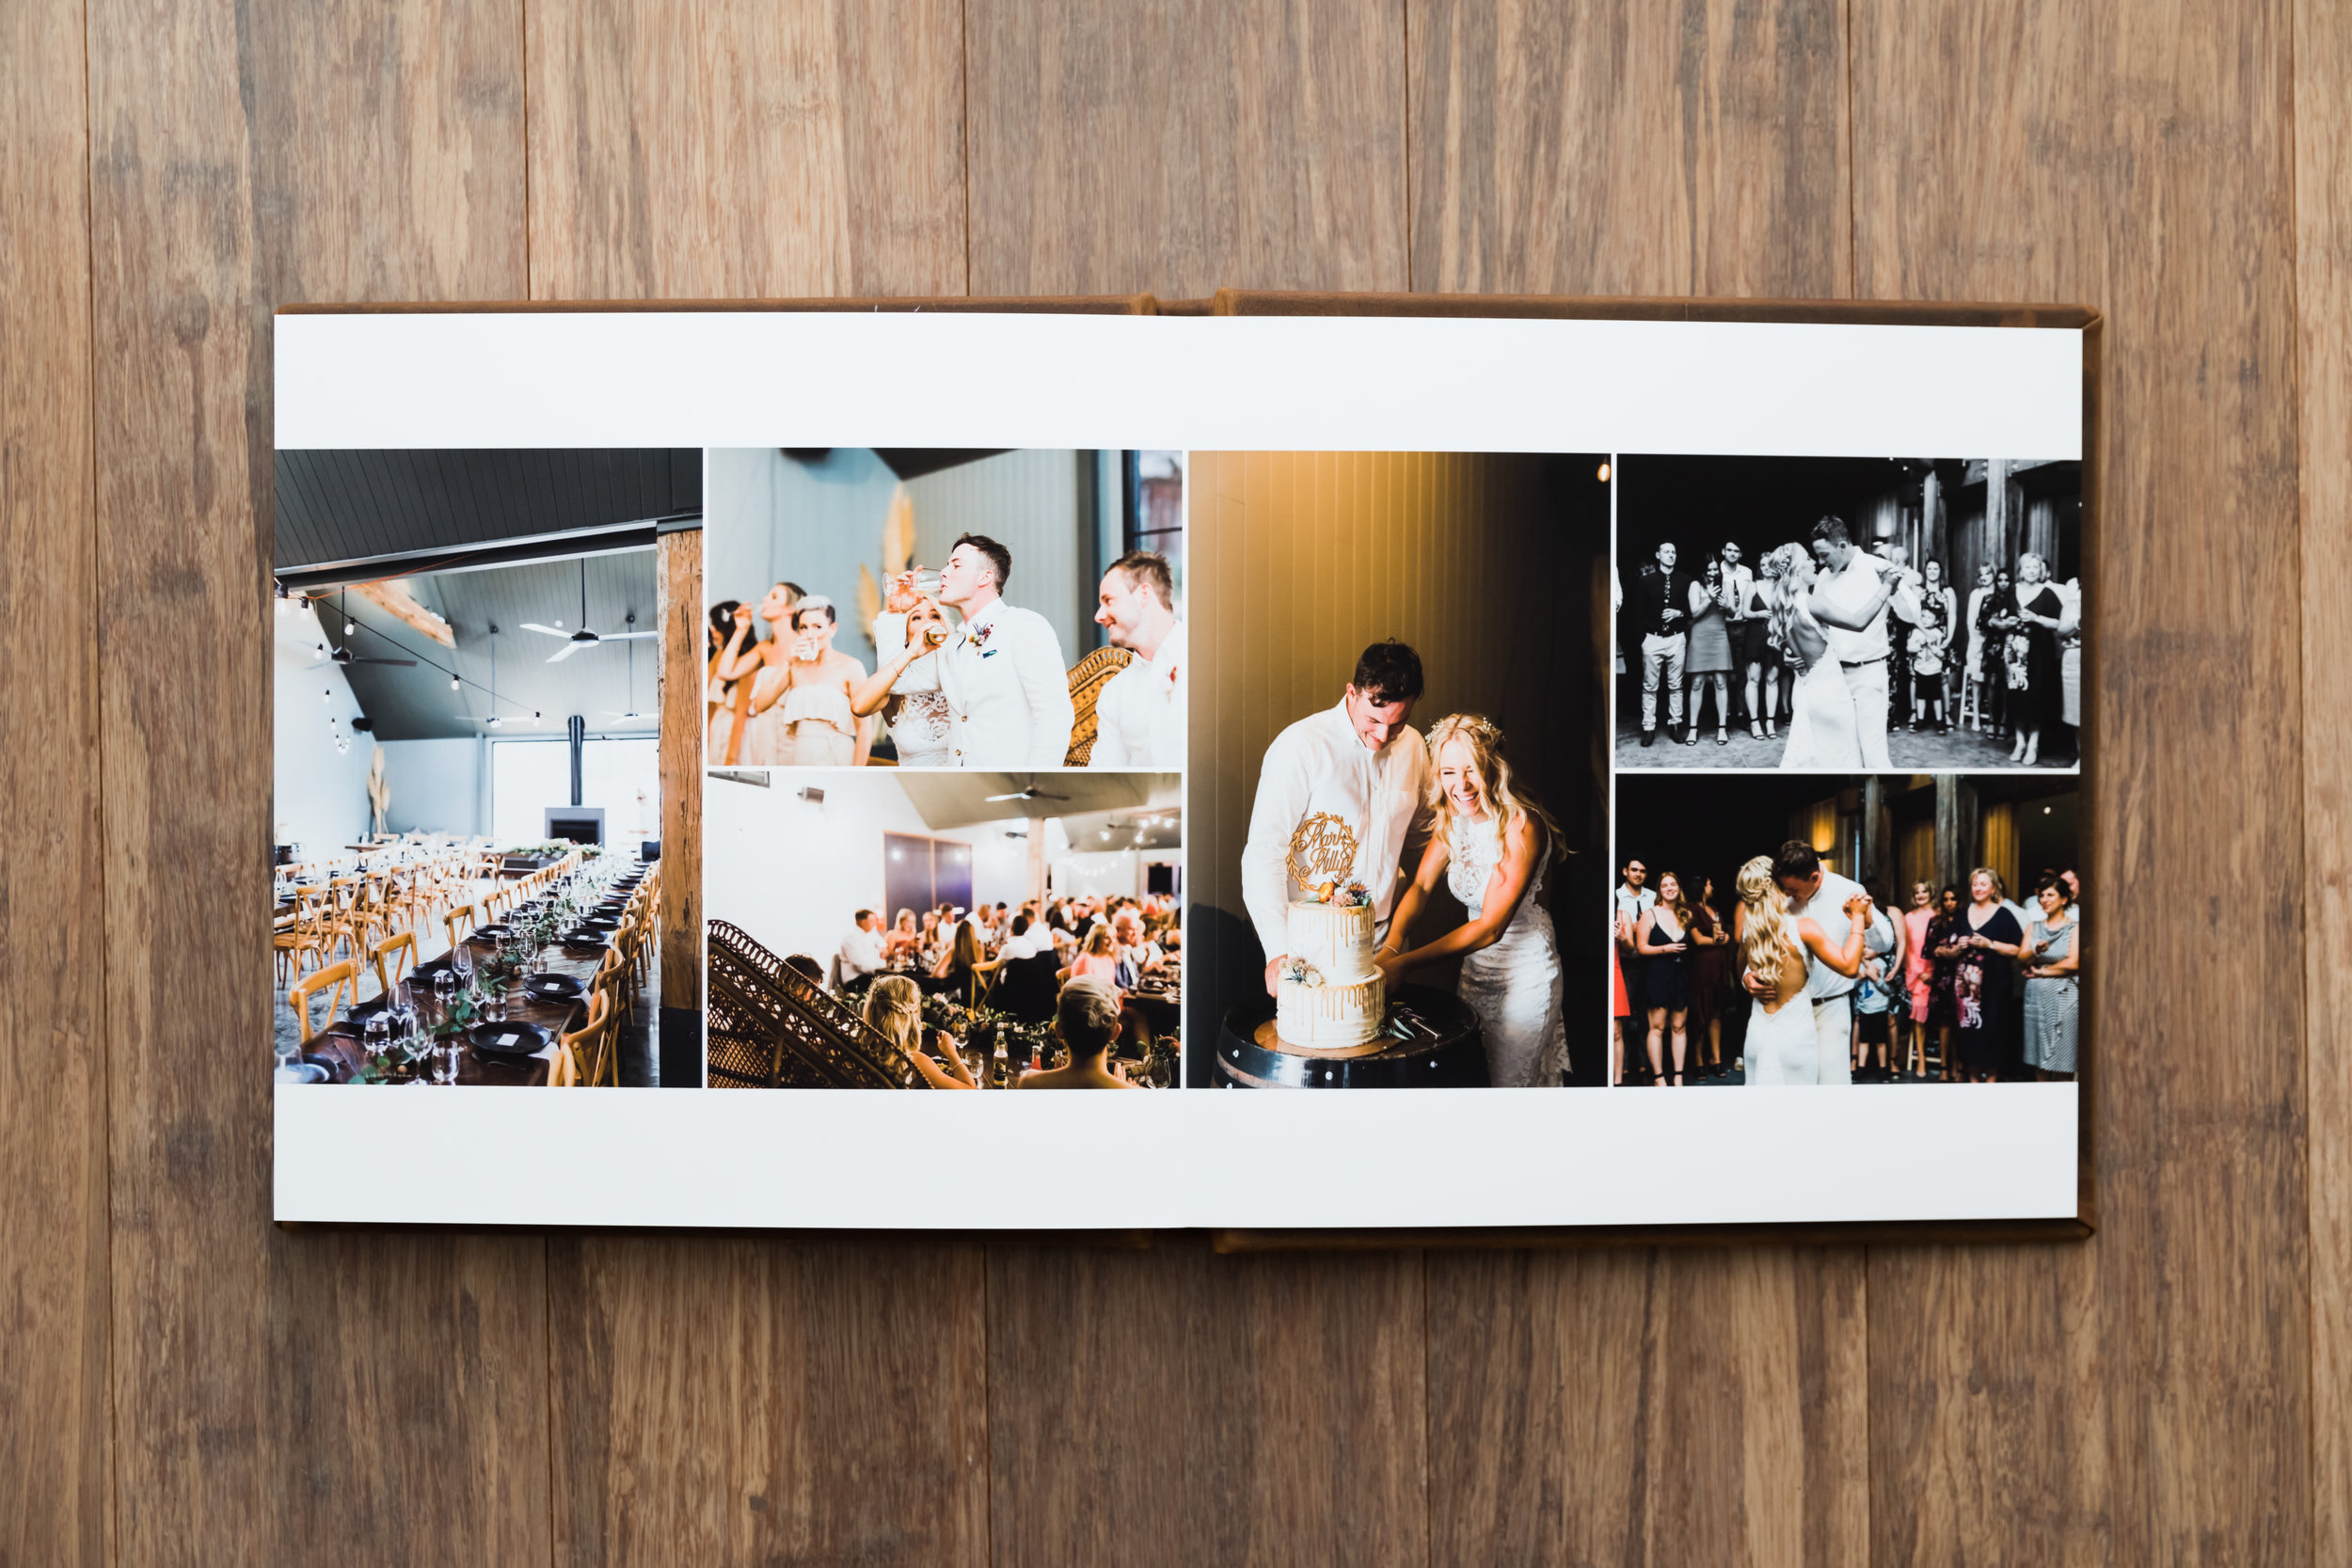 16-THE WOODHOUSE WEDDING ALBUM.jpg